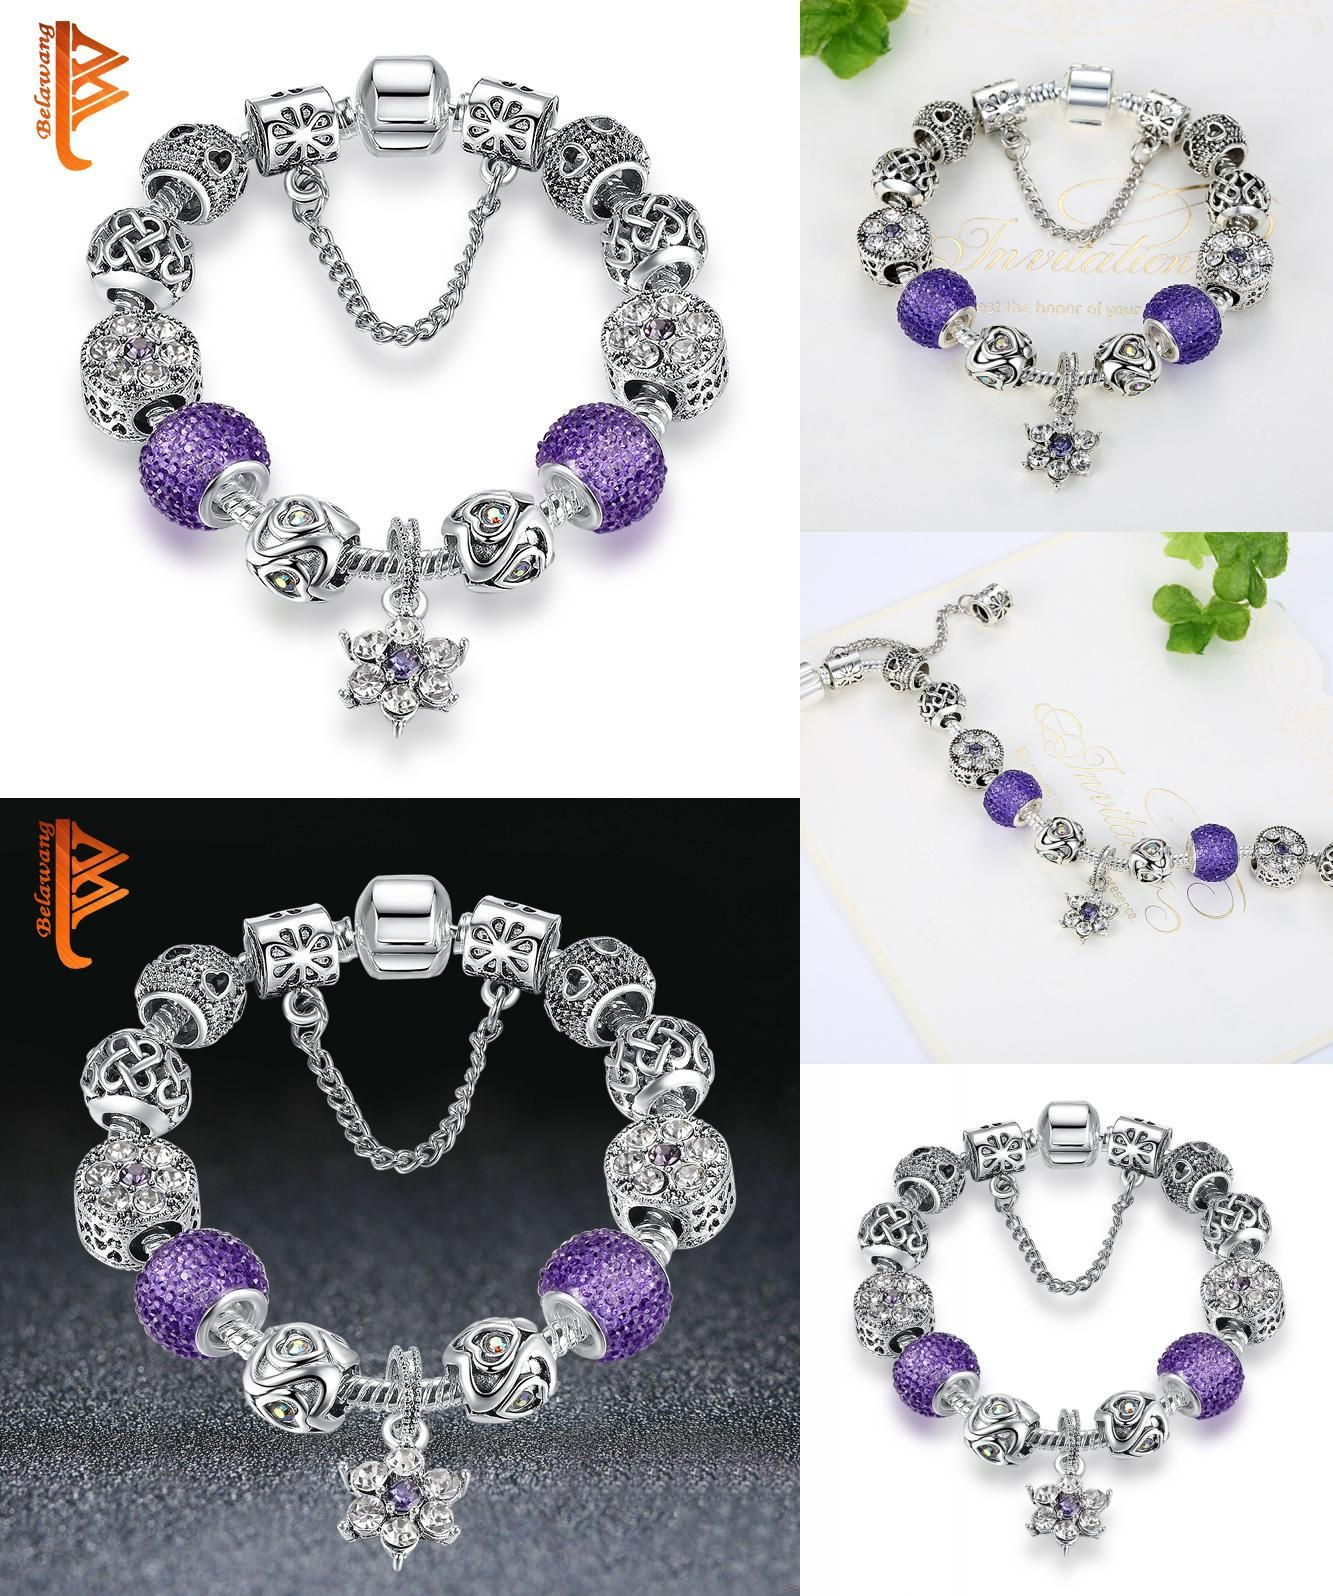 d4372cb5b [Visit to Buy] BELAWANG Fashion Bead Jewelry Silver Color Purple Forget Me  Not Crystal Flowers Bead Charm Bracelet for Women with Safety Chain # ...